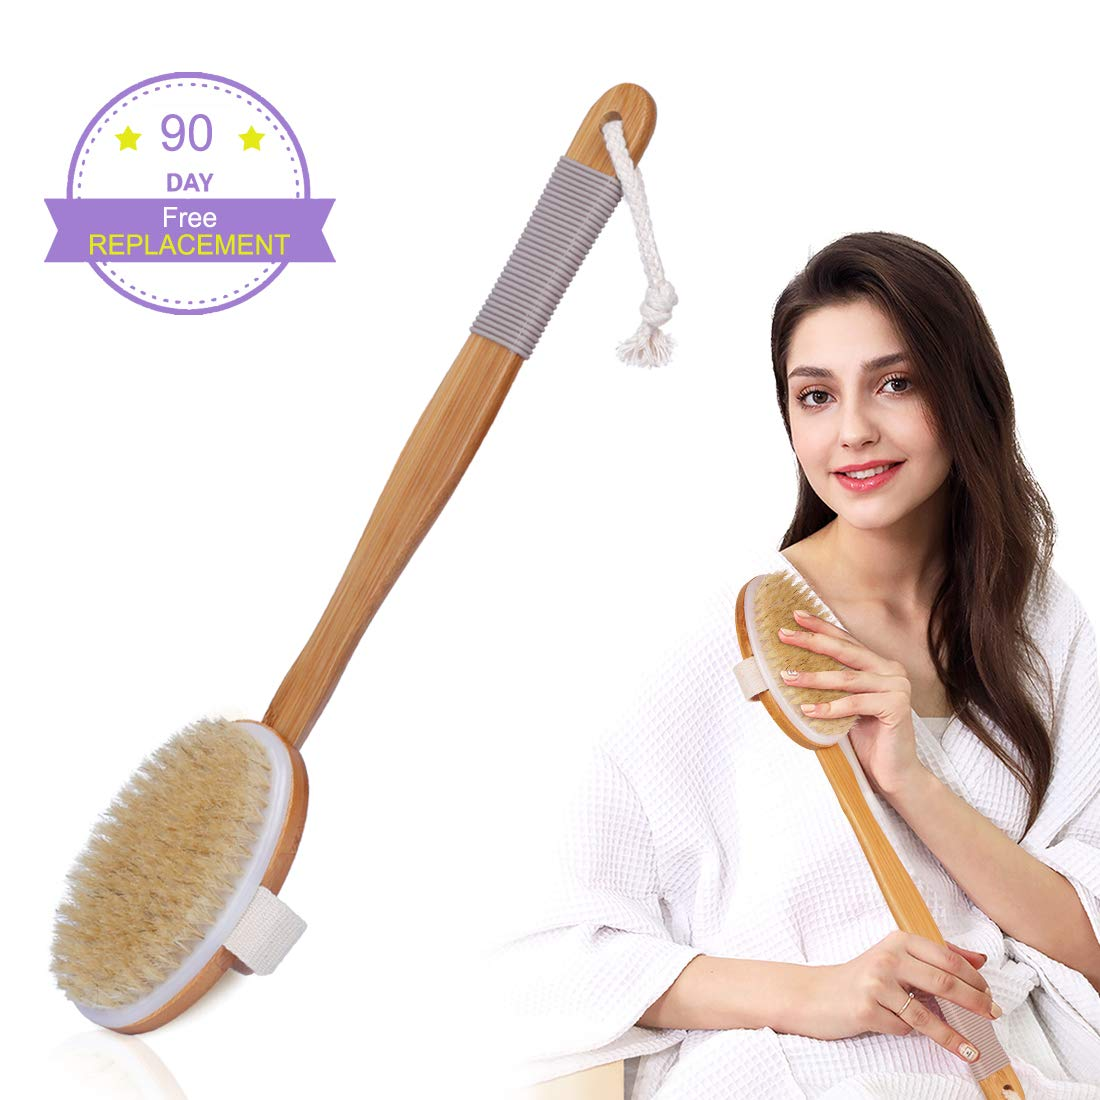 Shower Brush Dry Brush with Rubber Anti-skid Cover for Ladies Men and Elders Use Body Brush with Soft Bristles Back Scrubber Detachable Long Bamboo Handle